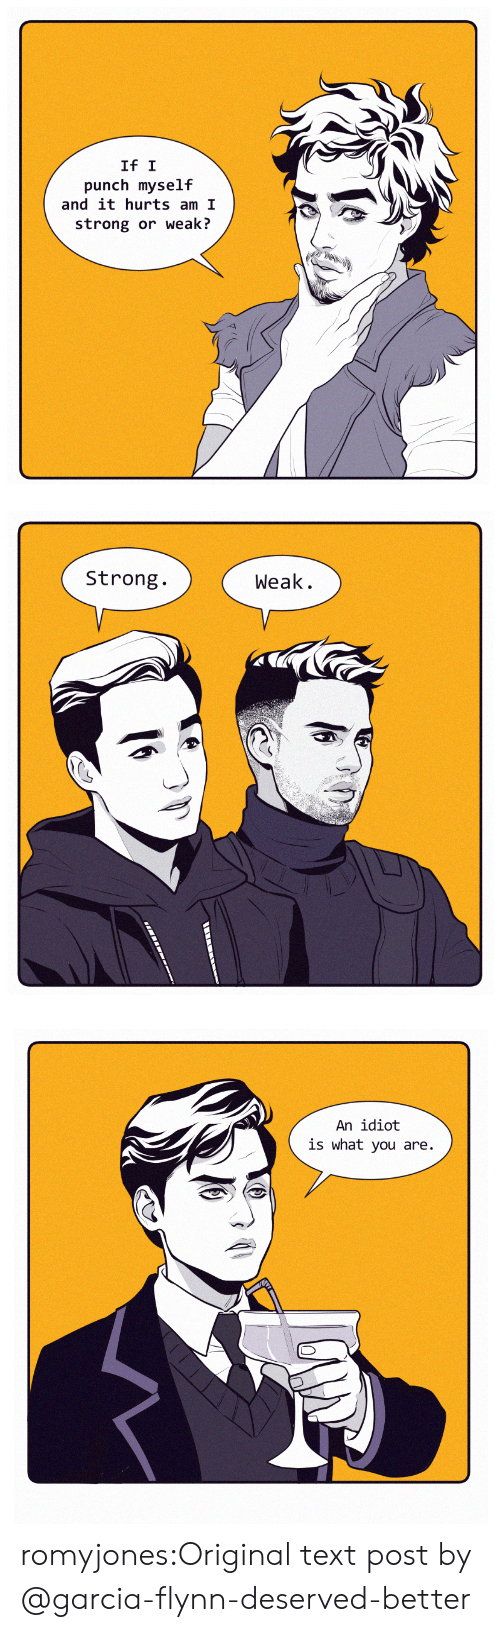 text post: If I  punch myself  and it hurts am I  strong or weaki?   Strong.  Weak.   An idiot  is what you are. romyjones:Original text post by @garcia-flynn-deserved-better